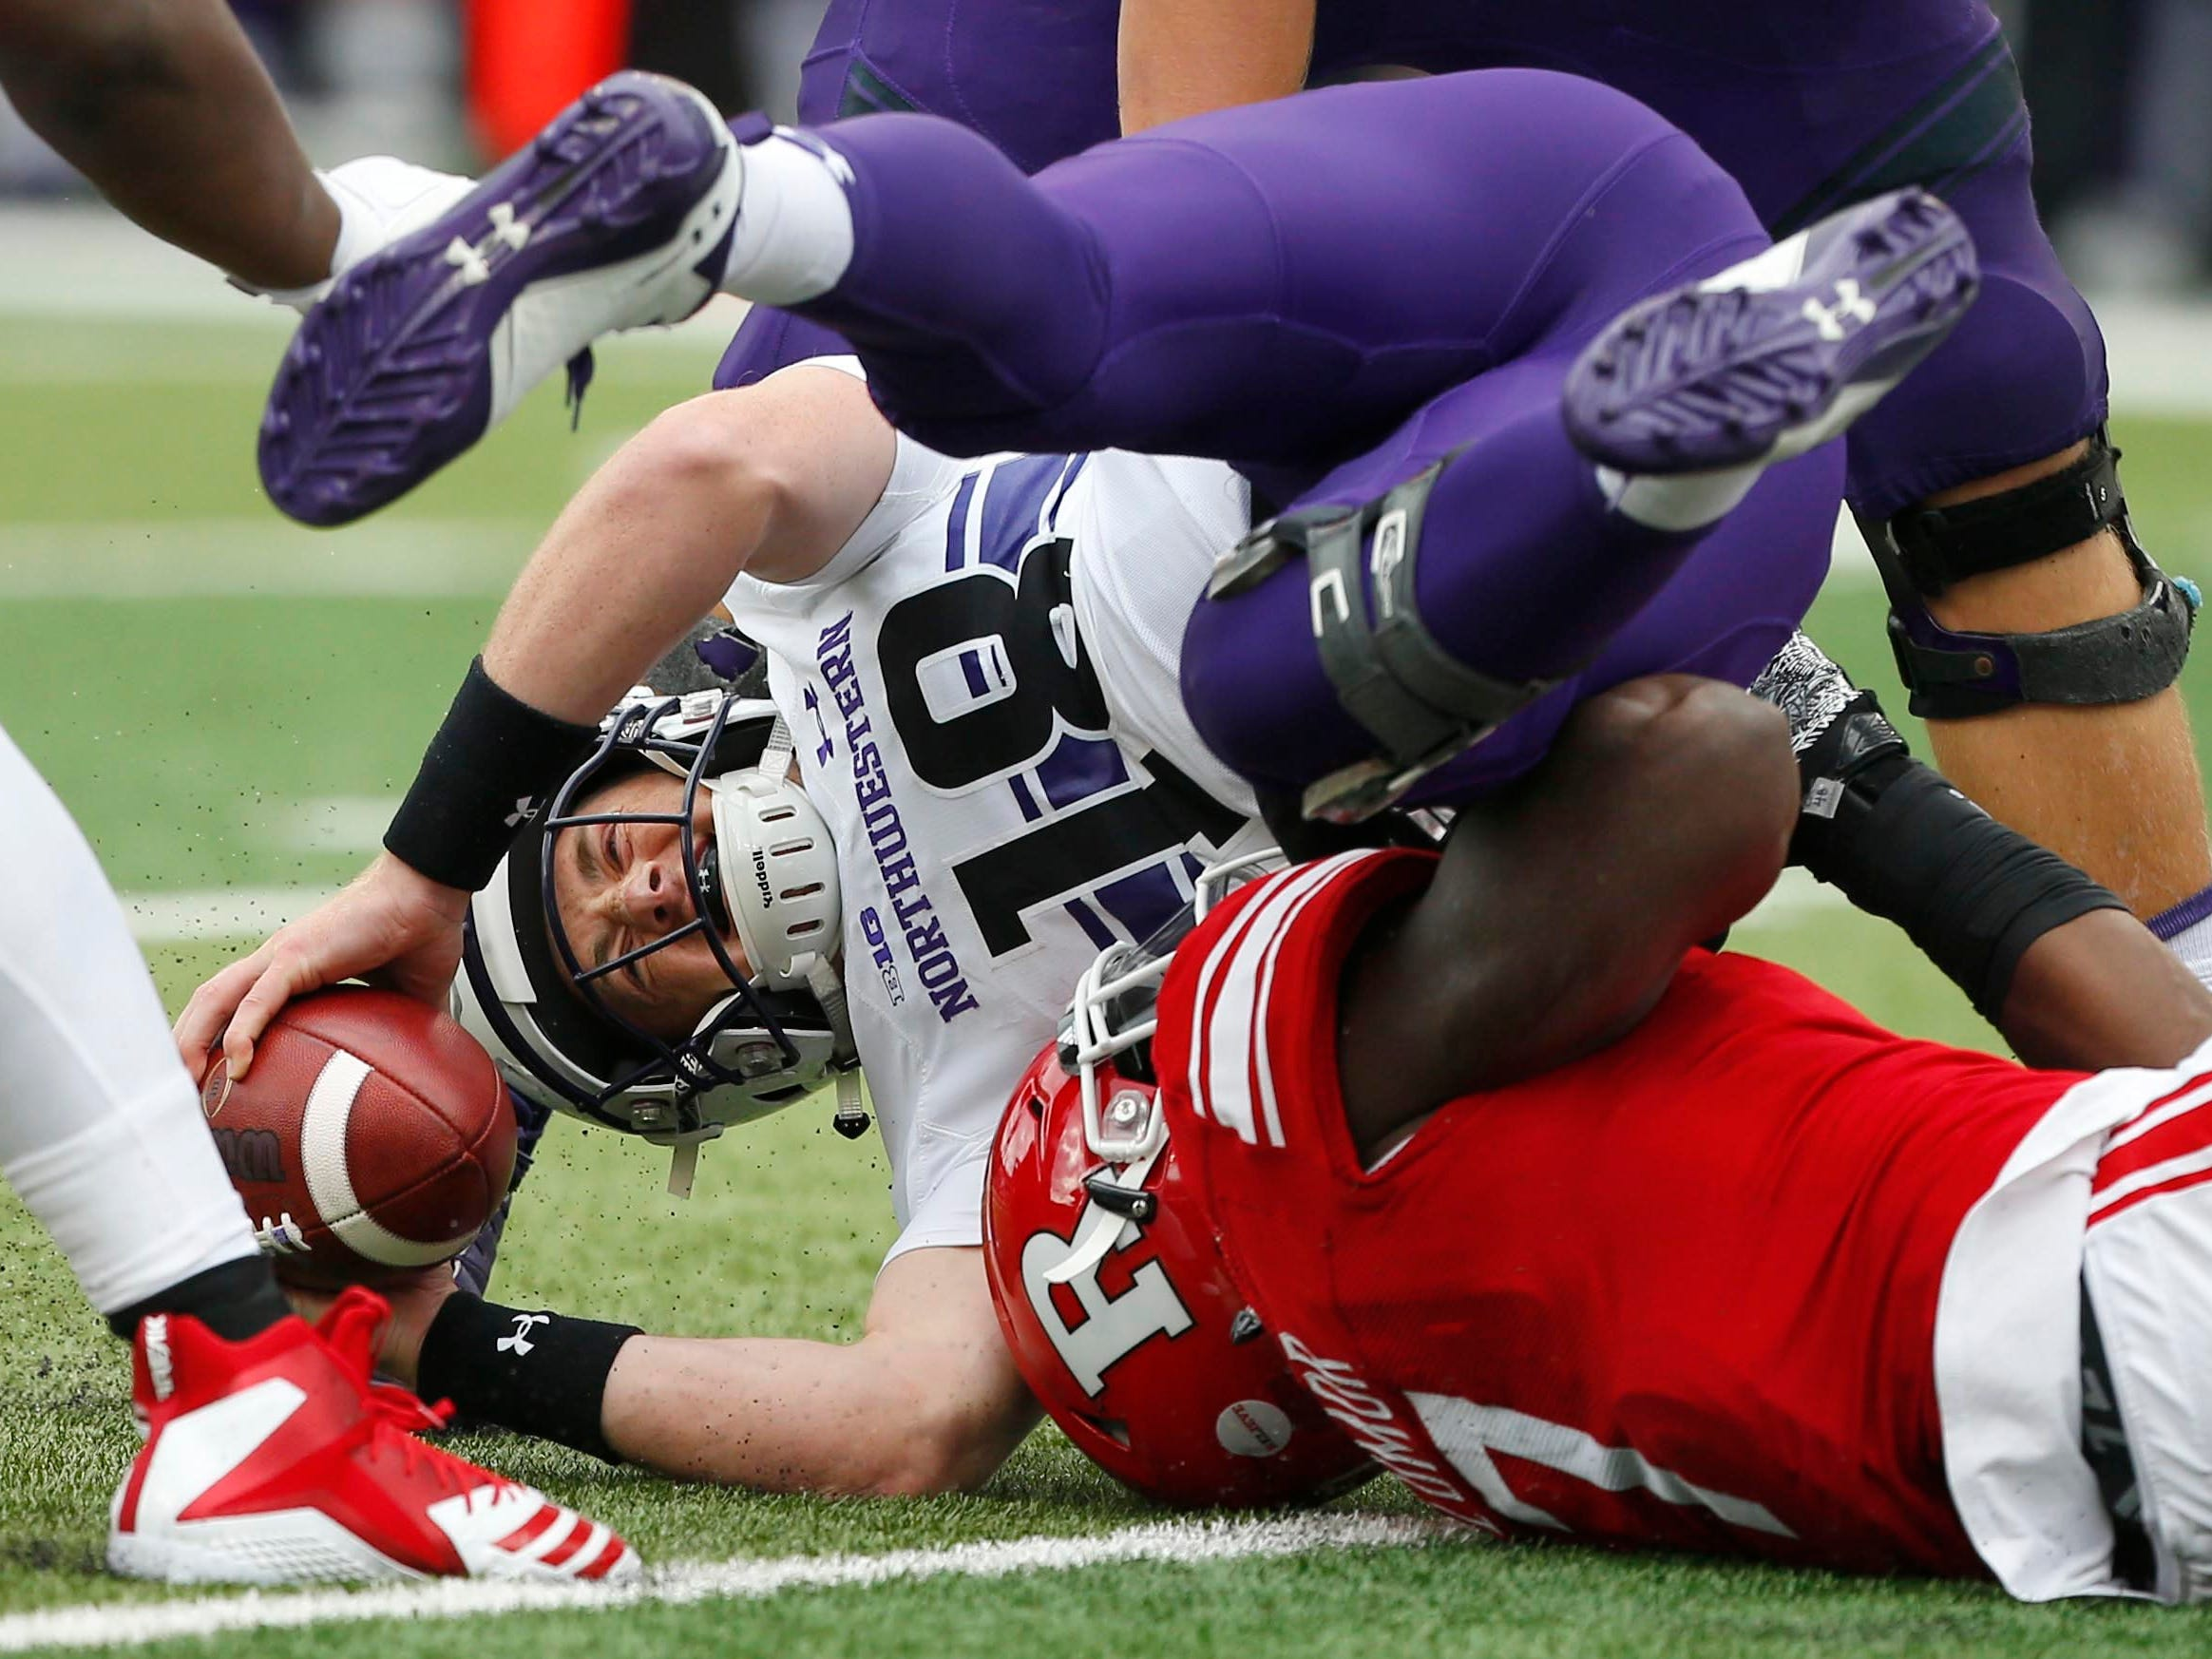 Rutgers Scarlet Knights defensive lineman Elorm Lumor sacks Northwestern Wildcats quarterback Clayton Thorson in the first half.